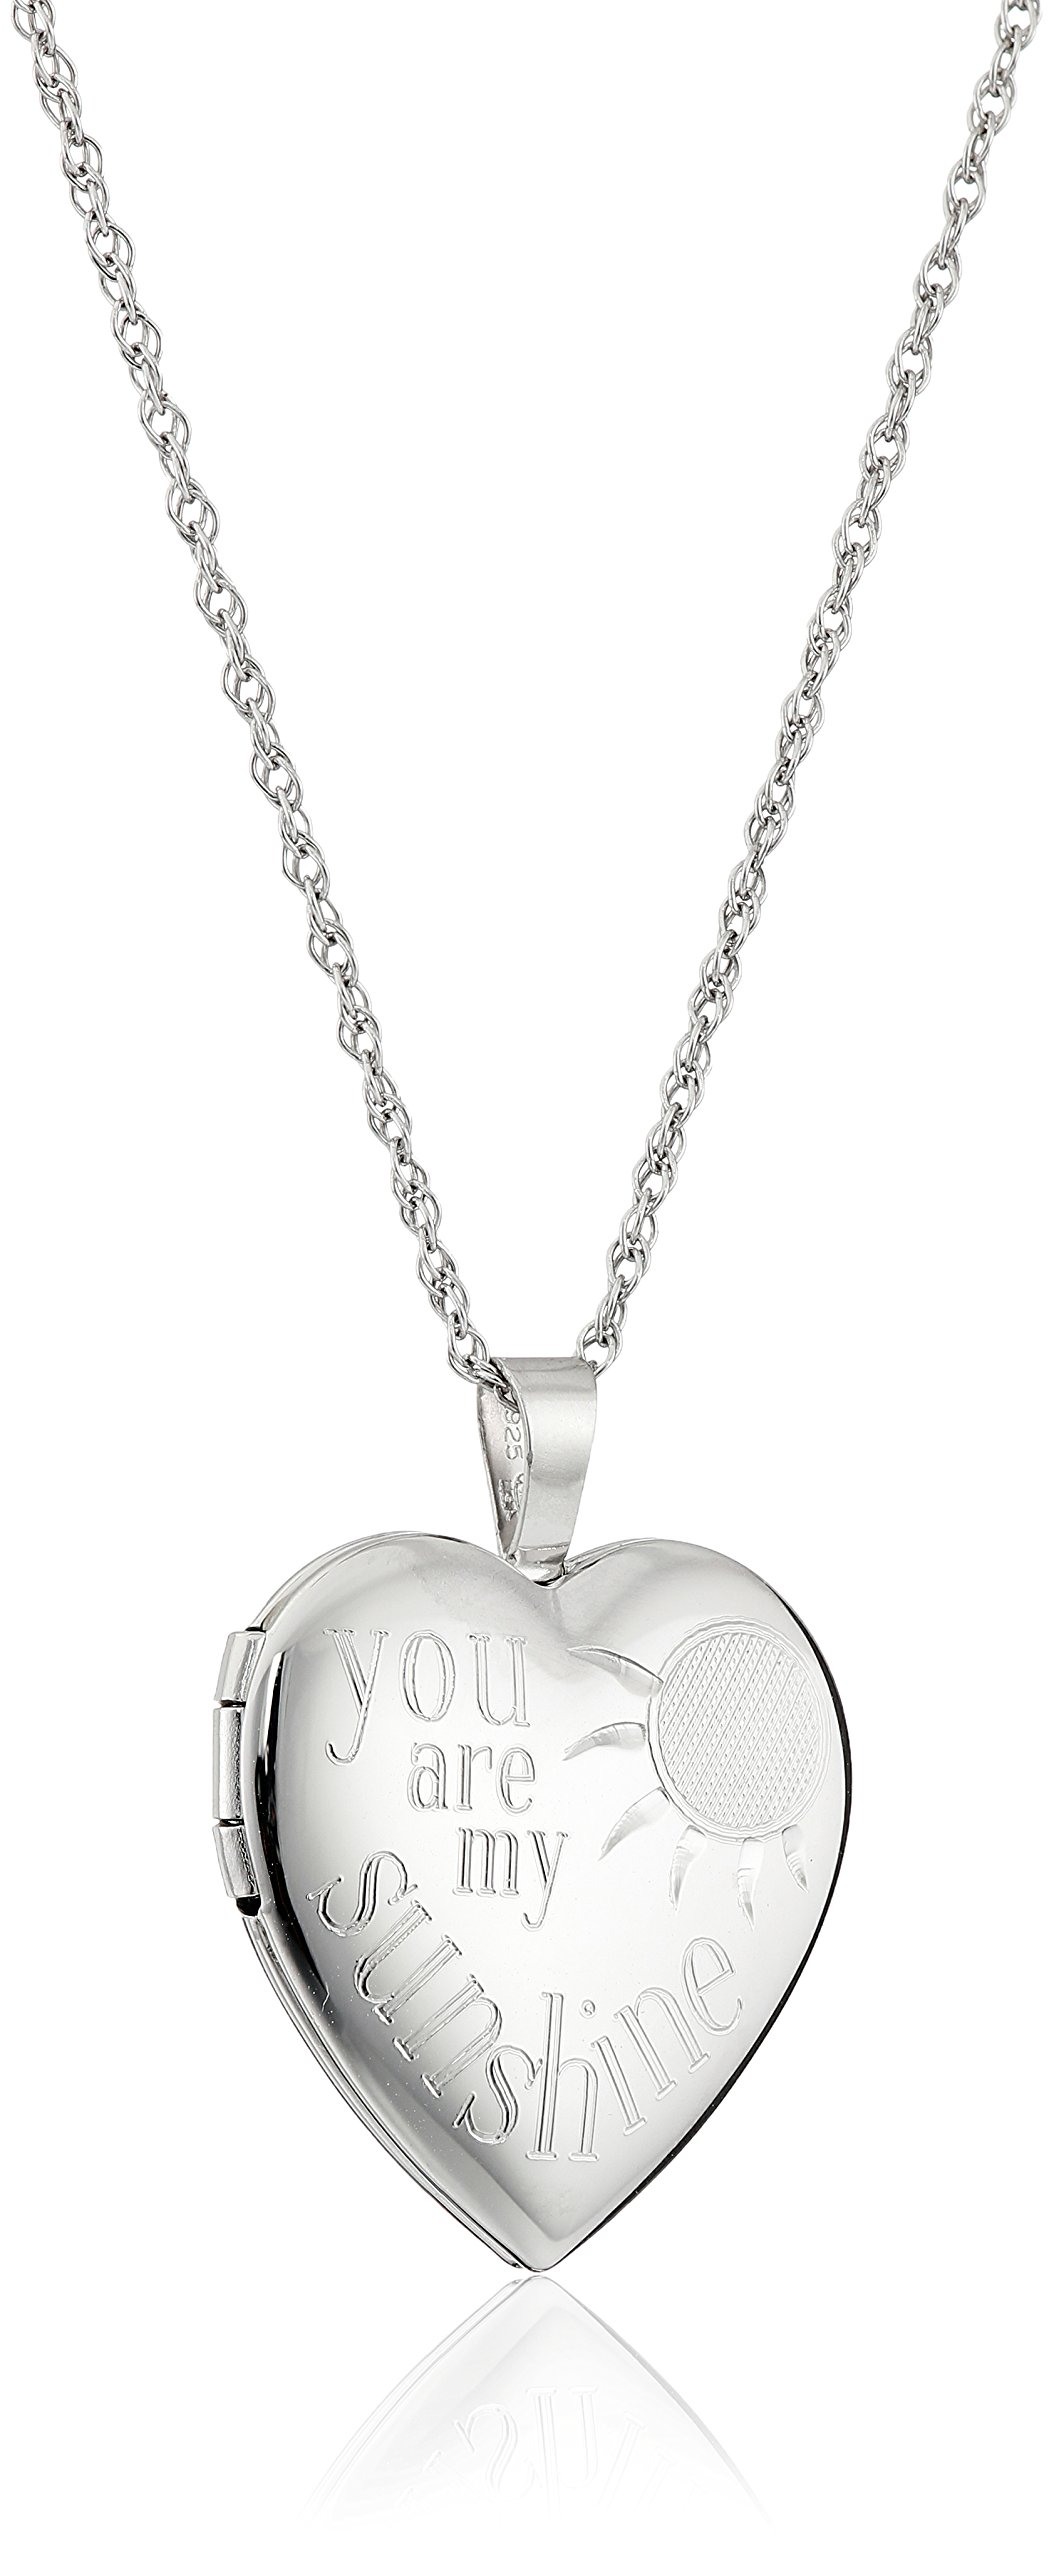 Sterling Silver Heart ''You Are My Sunshine'' Locket Necklace, 18''